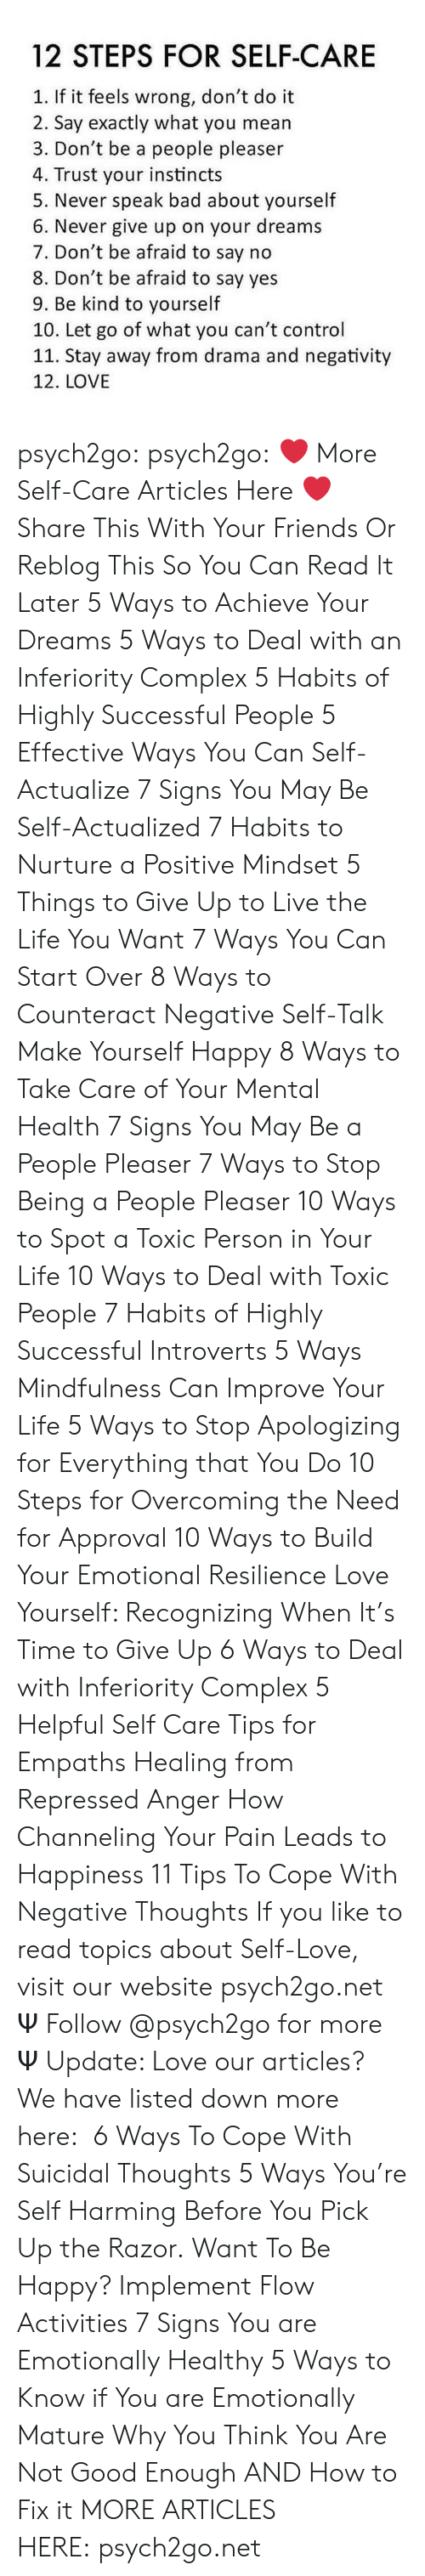 cope: 12 STEPS FOR SELF-CARE  1. If it feels wrong, don't do it  2. Say exactly what you mean  3. Don't be a people pleaser  4. Trust your instincts  5. Never speak bad about yourself  6. Never give up on your dreams  7. Don't be afraid to say no  8. Don't be afraid to say yes  9. Be kind to yourself  10. Let go of what you can't control  11. Stay away from drama and negativity  12. LOVE psych2go: psych2go:  ❤More Self-Care Articles Here❤ Share This With Your Friends Or Reblog This So You Can Read It Later 5 Ways to Achieve Your Dreams 5 Ways to Deal with an Inferiority Complex 5 Habits of Highly Successful People 5 Effective Ways You Can Self-Actualize 7 Signs You May Be Self-Actualized 7 Habits to Nurture a Positive Mindset 5 Things to Give Up to Live the Life You Want 7 Ways You Can Start Over 8 Ways to Counteract Negative Self-Talk Make Yourself Happy 8 Ways to Take Care of Your Mental Health 7 Signs You May Be a People Pleaser 7 Ways to Stop Being a People Pleaser 10 Ways to Spot a Toxic Person in Your Life 10 Ways to Deal with Toxic People 7 Habits of Highly Successful Introverts 5 Ways Mindfulness Can Improve Your Life 5 Ways to Stop Apologizing for Everything that You Do 10 Steps for Overcoming the Need for Approval 10 Ways to Build Your Emotional Resilience Love Yourself: Recognizing When It's Time to Give Up 6 Ways to Deal with Inferiority Complex 5 Helpful Self Care Tips for Empaths Healing from Repressed Anger How Channeling Your Pain Leads to Happiness 11 Tips To Cope With Negative Thoughts If you like to read topics about Self-Love, visit our website psych2go.net Ψ Follow @psych2go for more Ψ  Update: Love our articles? We have listed down more here: 6 Ways To Cope With Suicidal Thoughts 5 Ways You're Self Harming Before You Pick Up the Razor. Want To Be Happy? Implement Flow Activities 7 Signs You are Emotionally Healthy 5 Ways to Know if You are Emotionally Mature Why You Think You Are Not Good Enough AND How to Fix it MORE ARTICLES HERE:psych2go.net